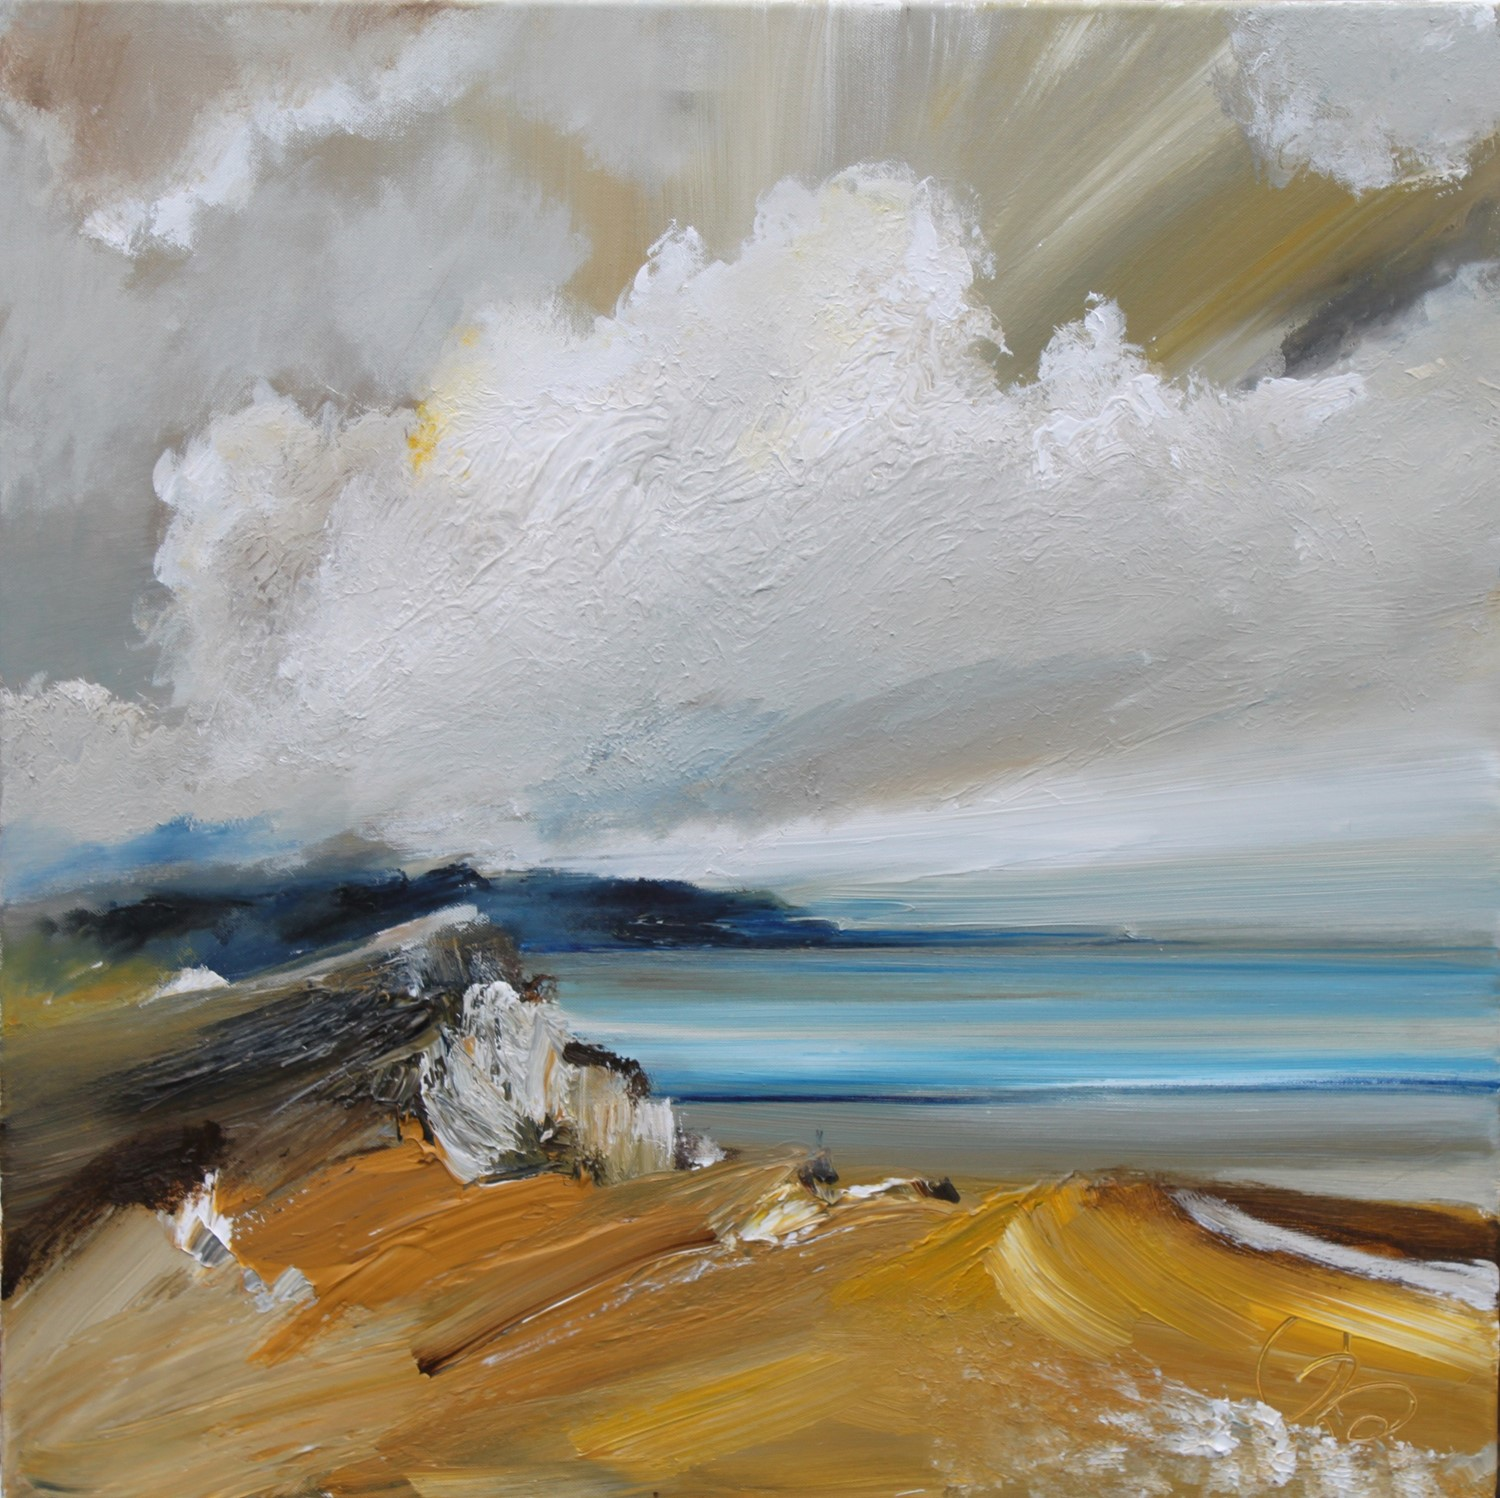 'Western Cliffs' by artist Rosanne Barr